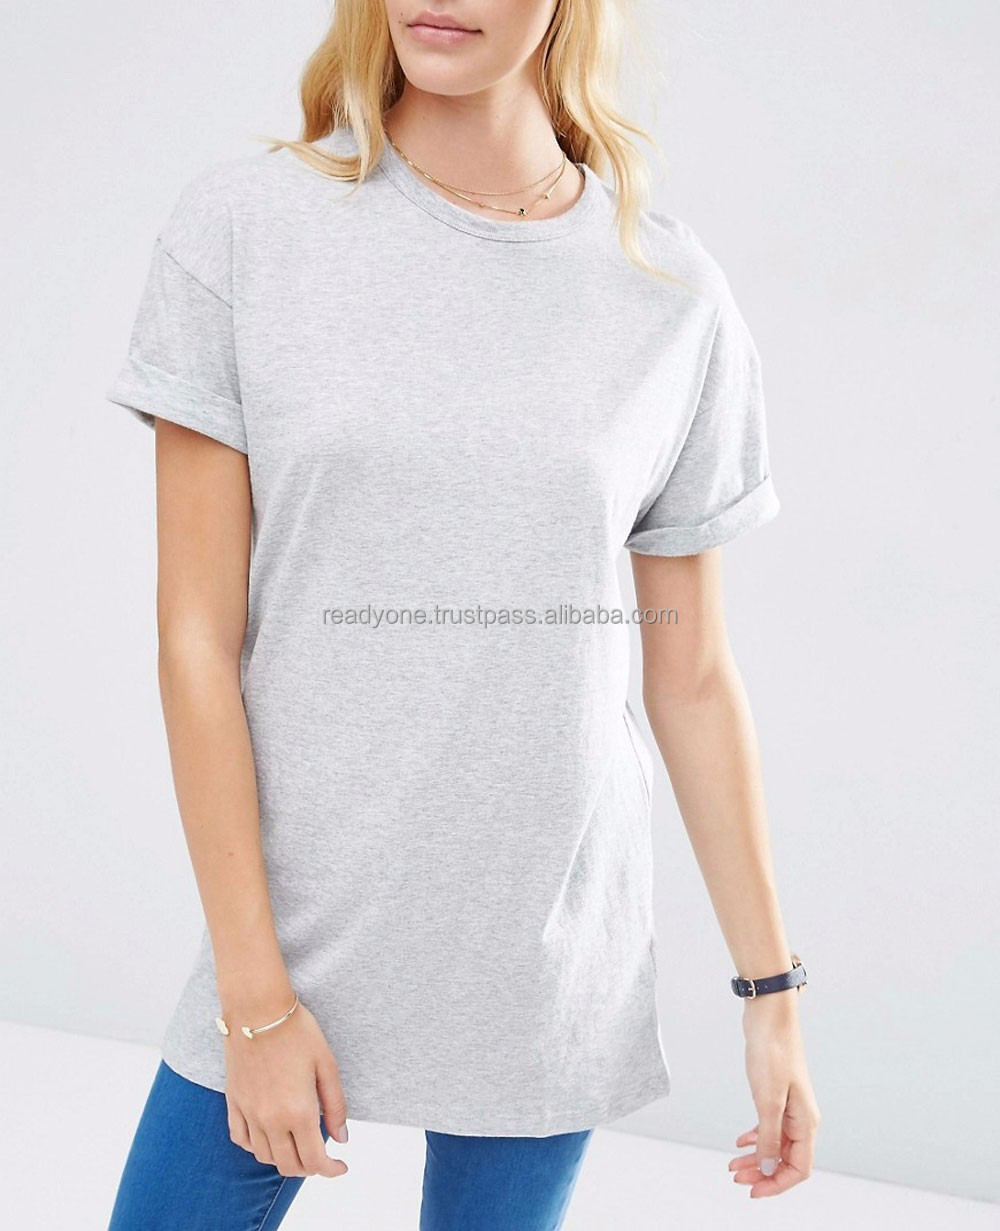 Custom Women Casual Short Sleeve Printed Cotton T Shirts,Oem Clothes Grey O Neck Printed T-Shirts For